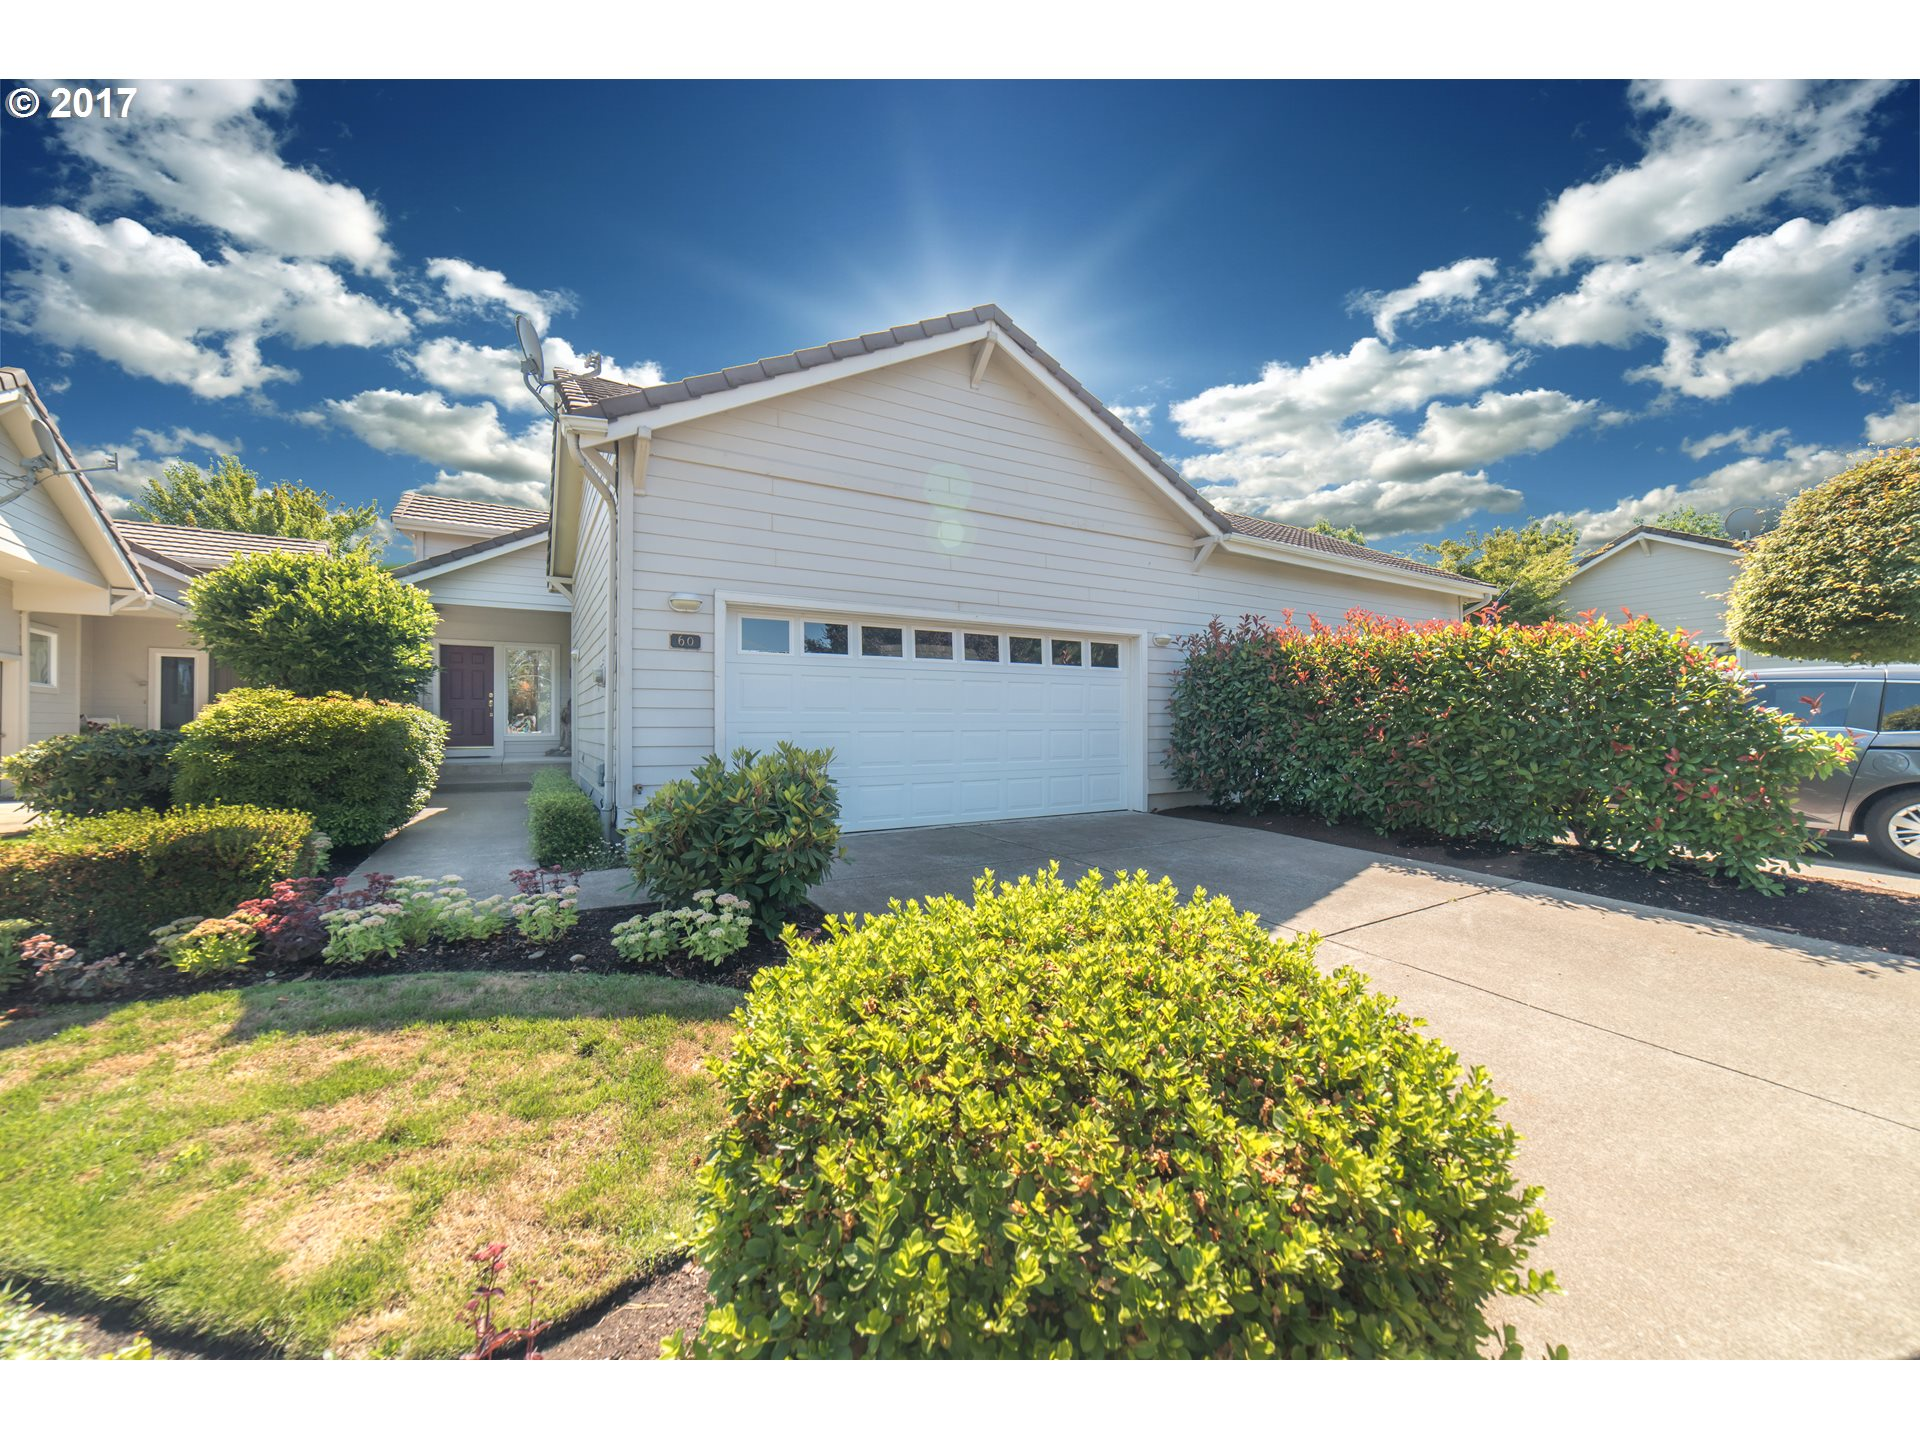 60 MAGNOLIA DR, Creswell, OR 97426